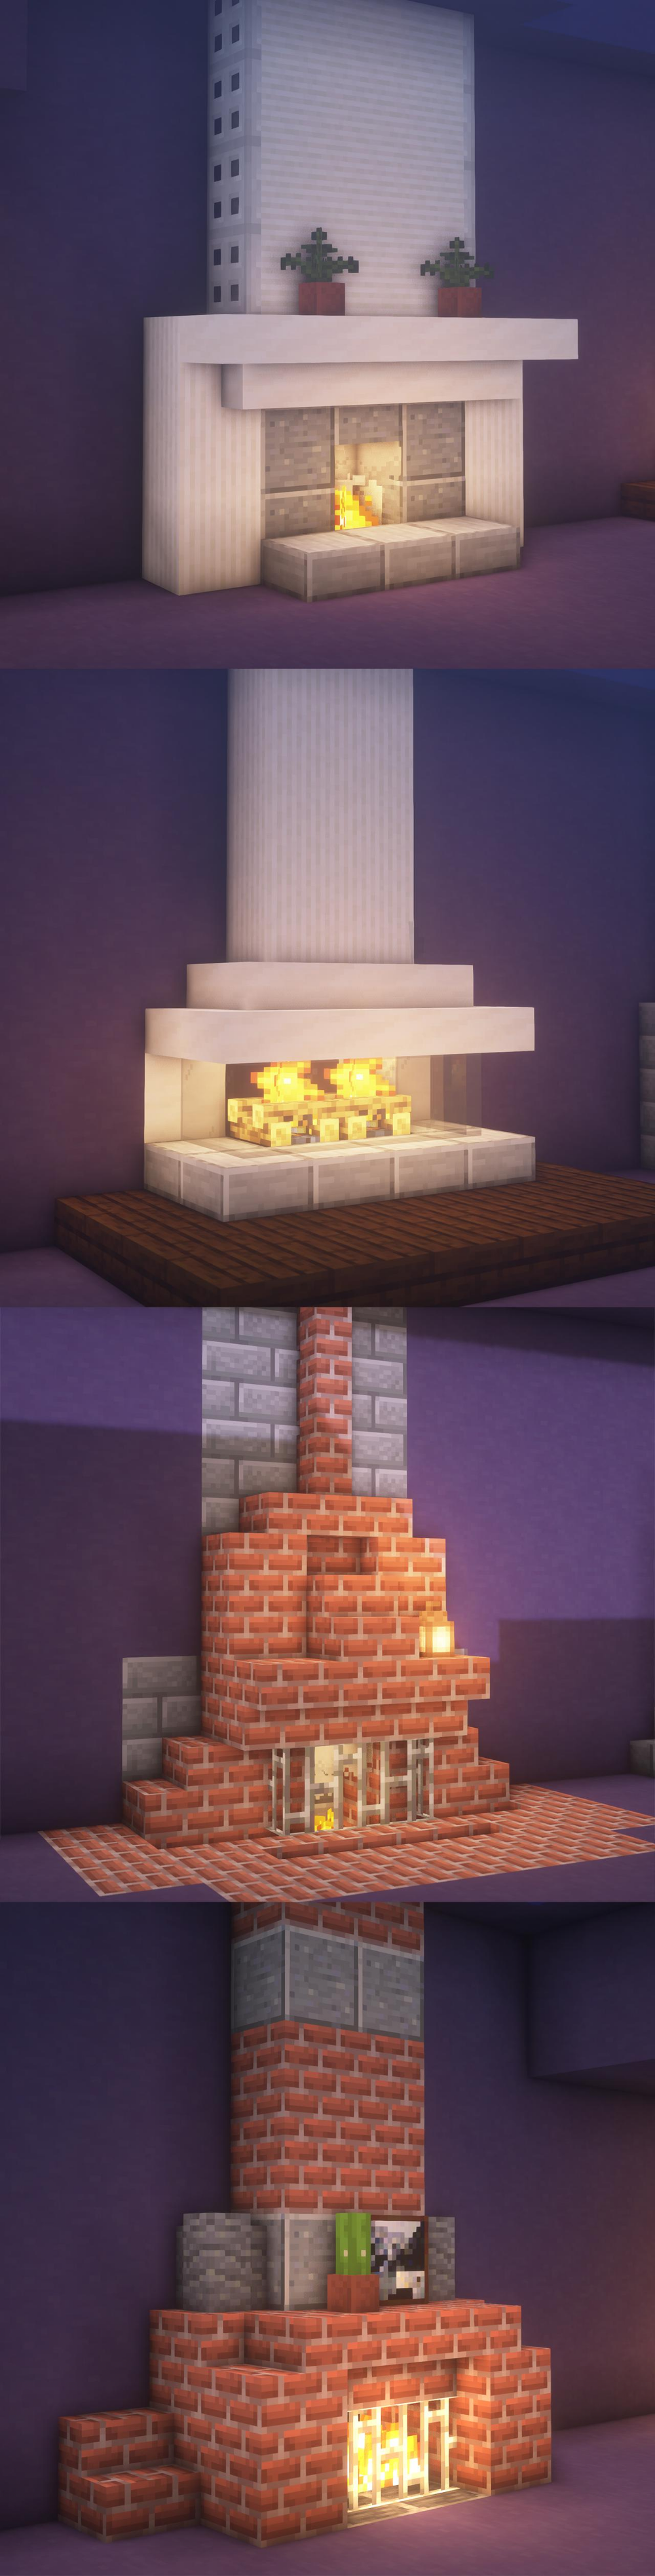 4 Of My Favorite Fireplace Designs From My Video Featuring